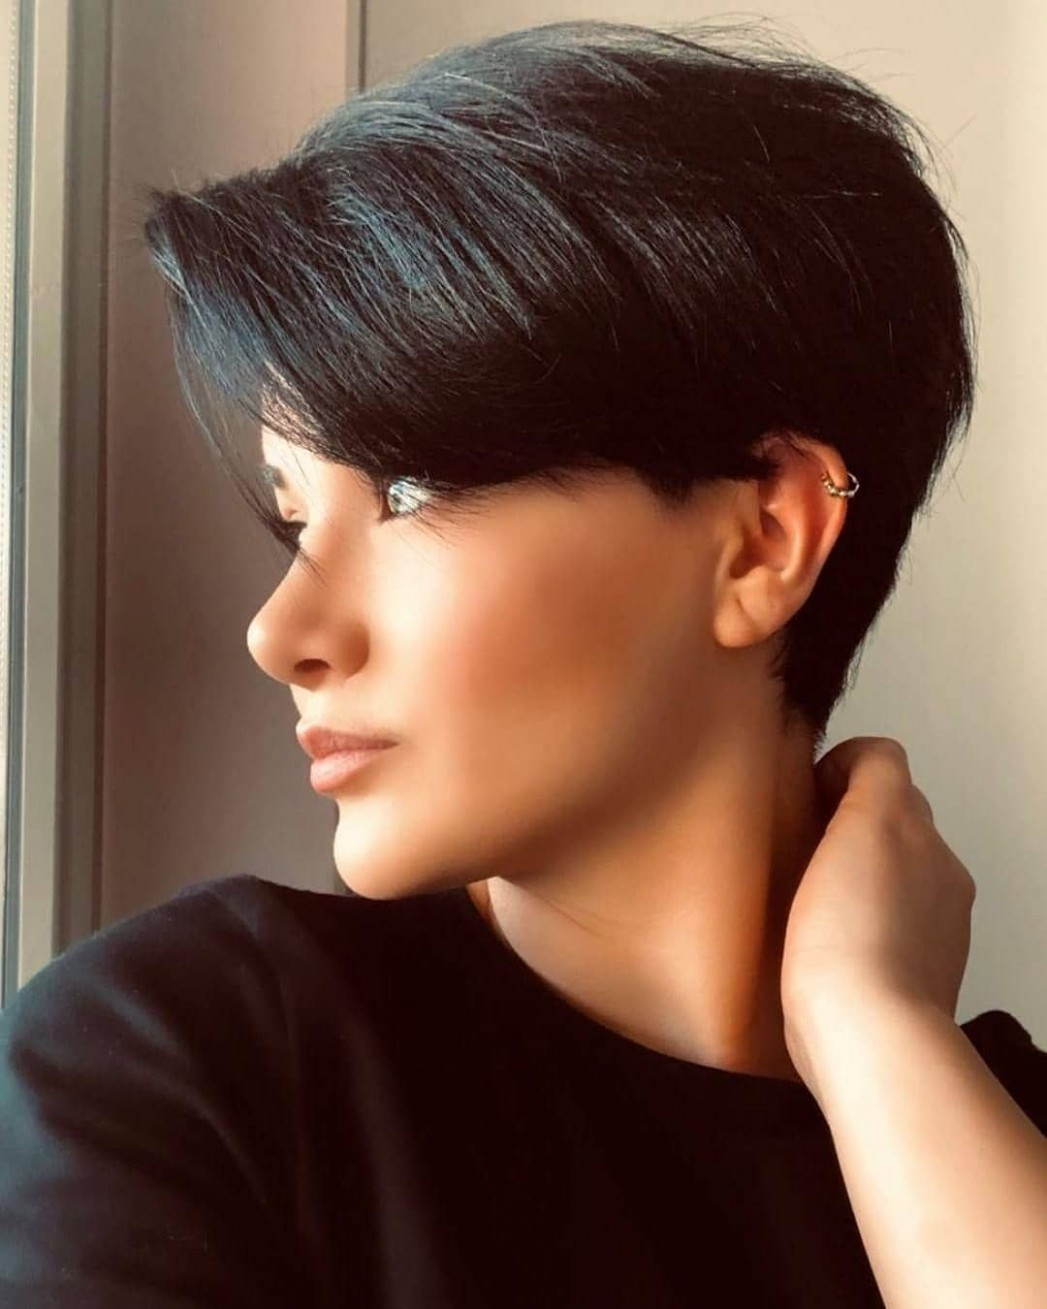 9 Of The Most Stunning Short Hairstyles On Instagram (March 9 Best Short Haircuts For Girls